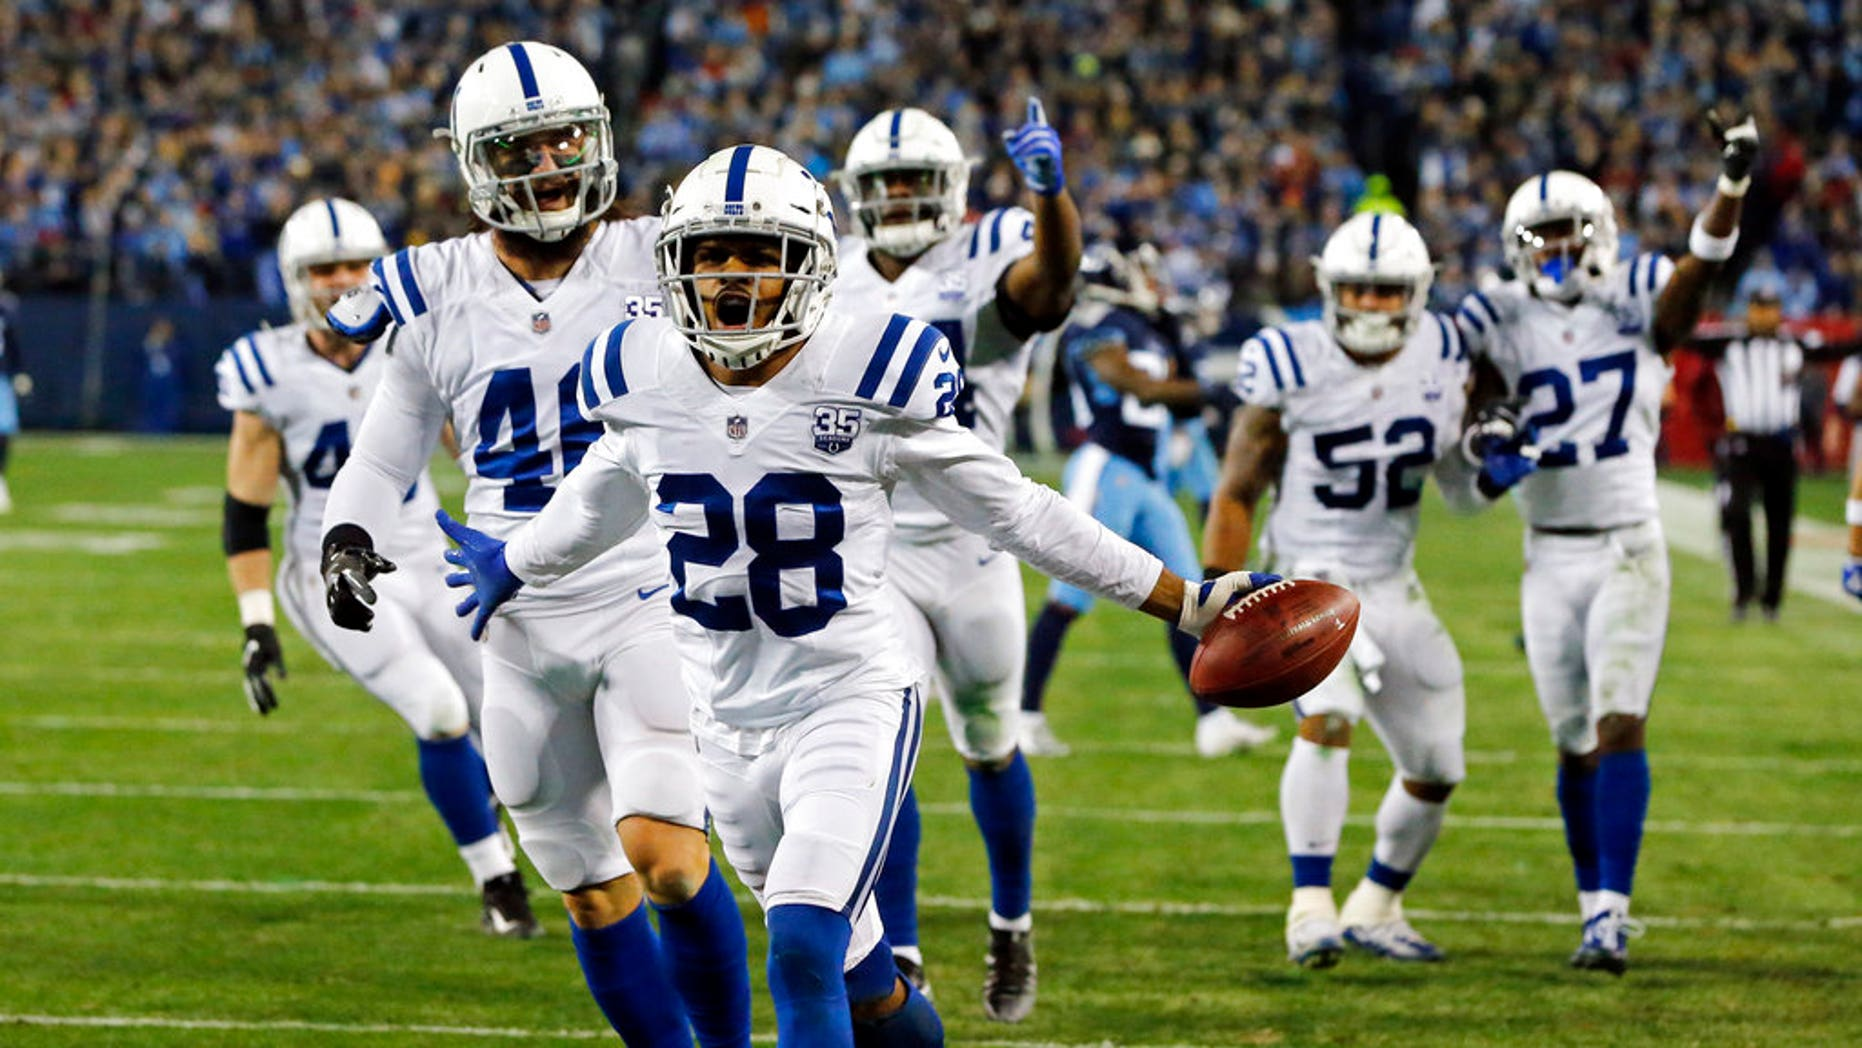 Indianapolis Colts cornerback Chris Milton (28) celebrates after recovering a punt fumbled by the Tennessee Titans in the first half of an NFL football game in Nashville, Tenn.